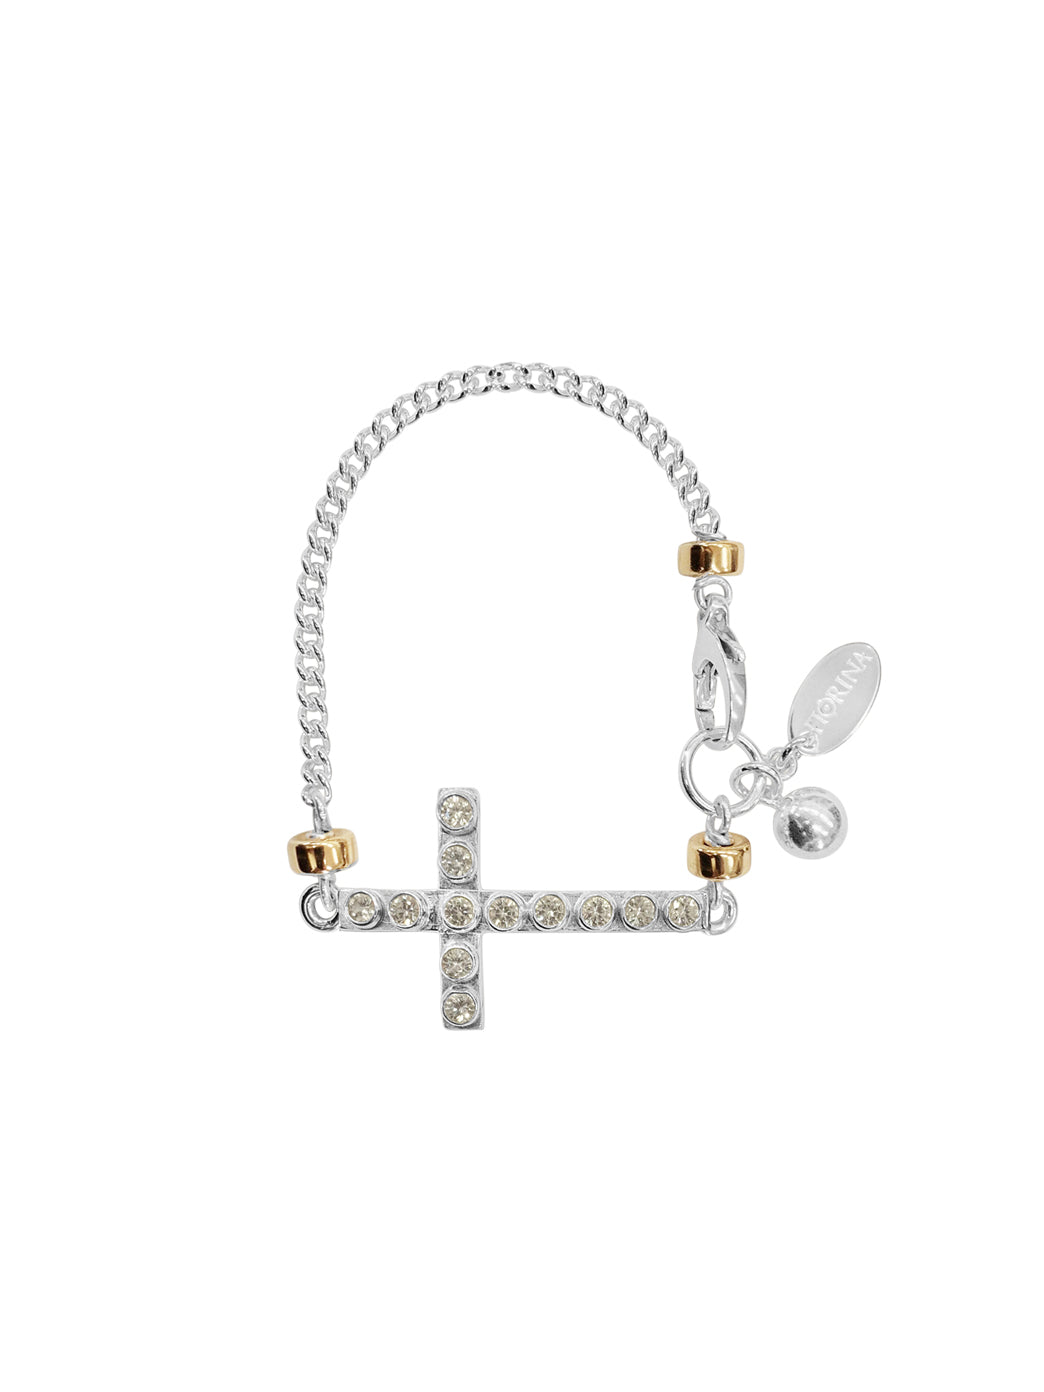 Fiorina Jewellery La Vie Side Cross Bracelet White Spinel